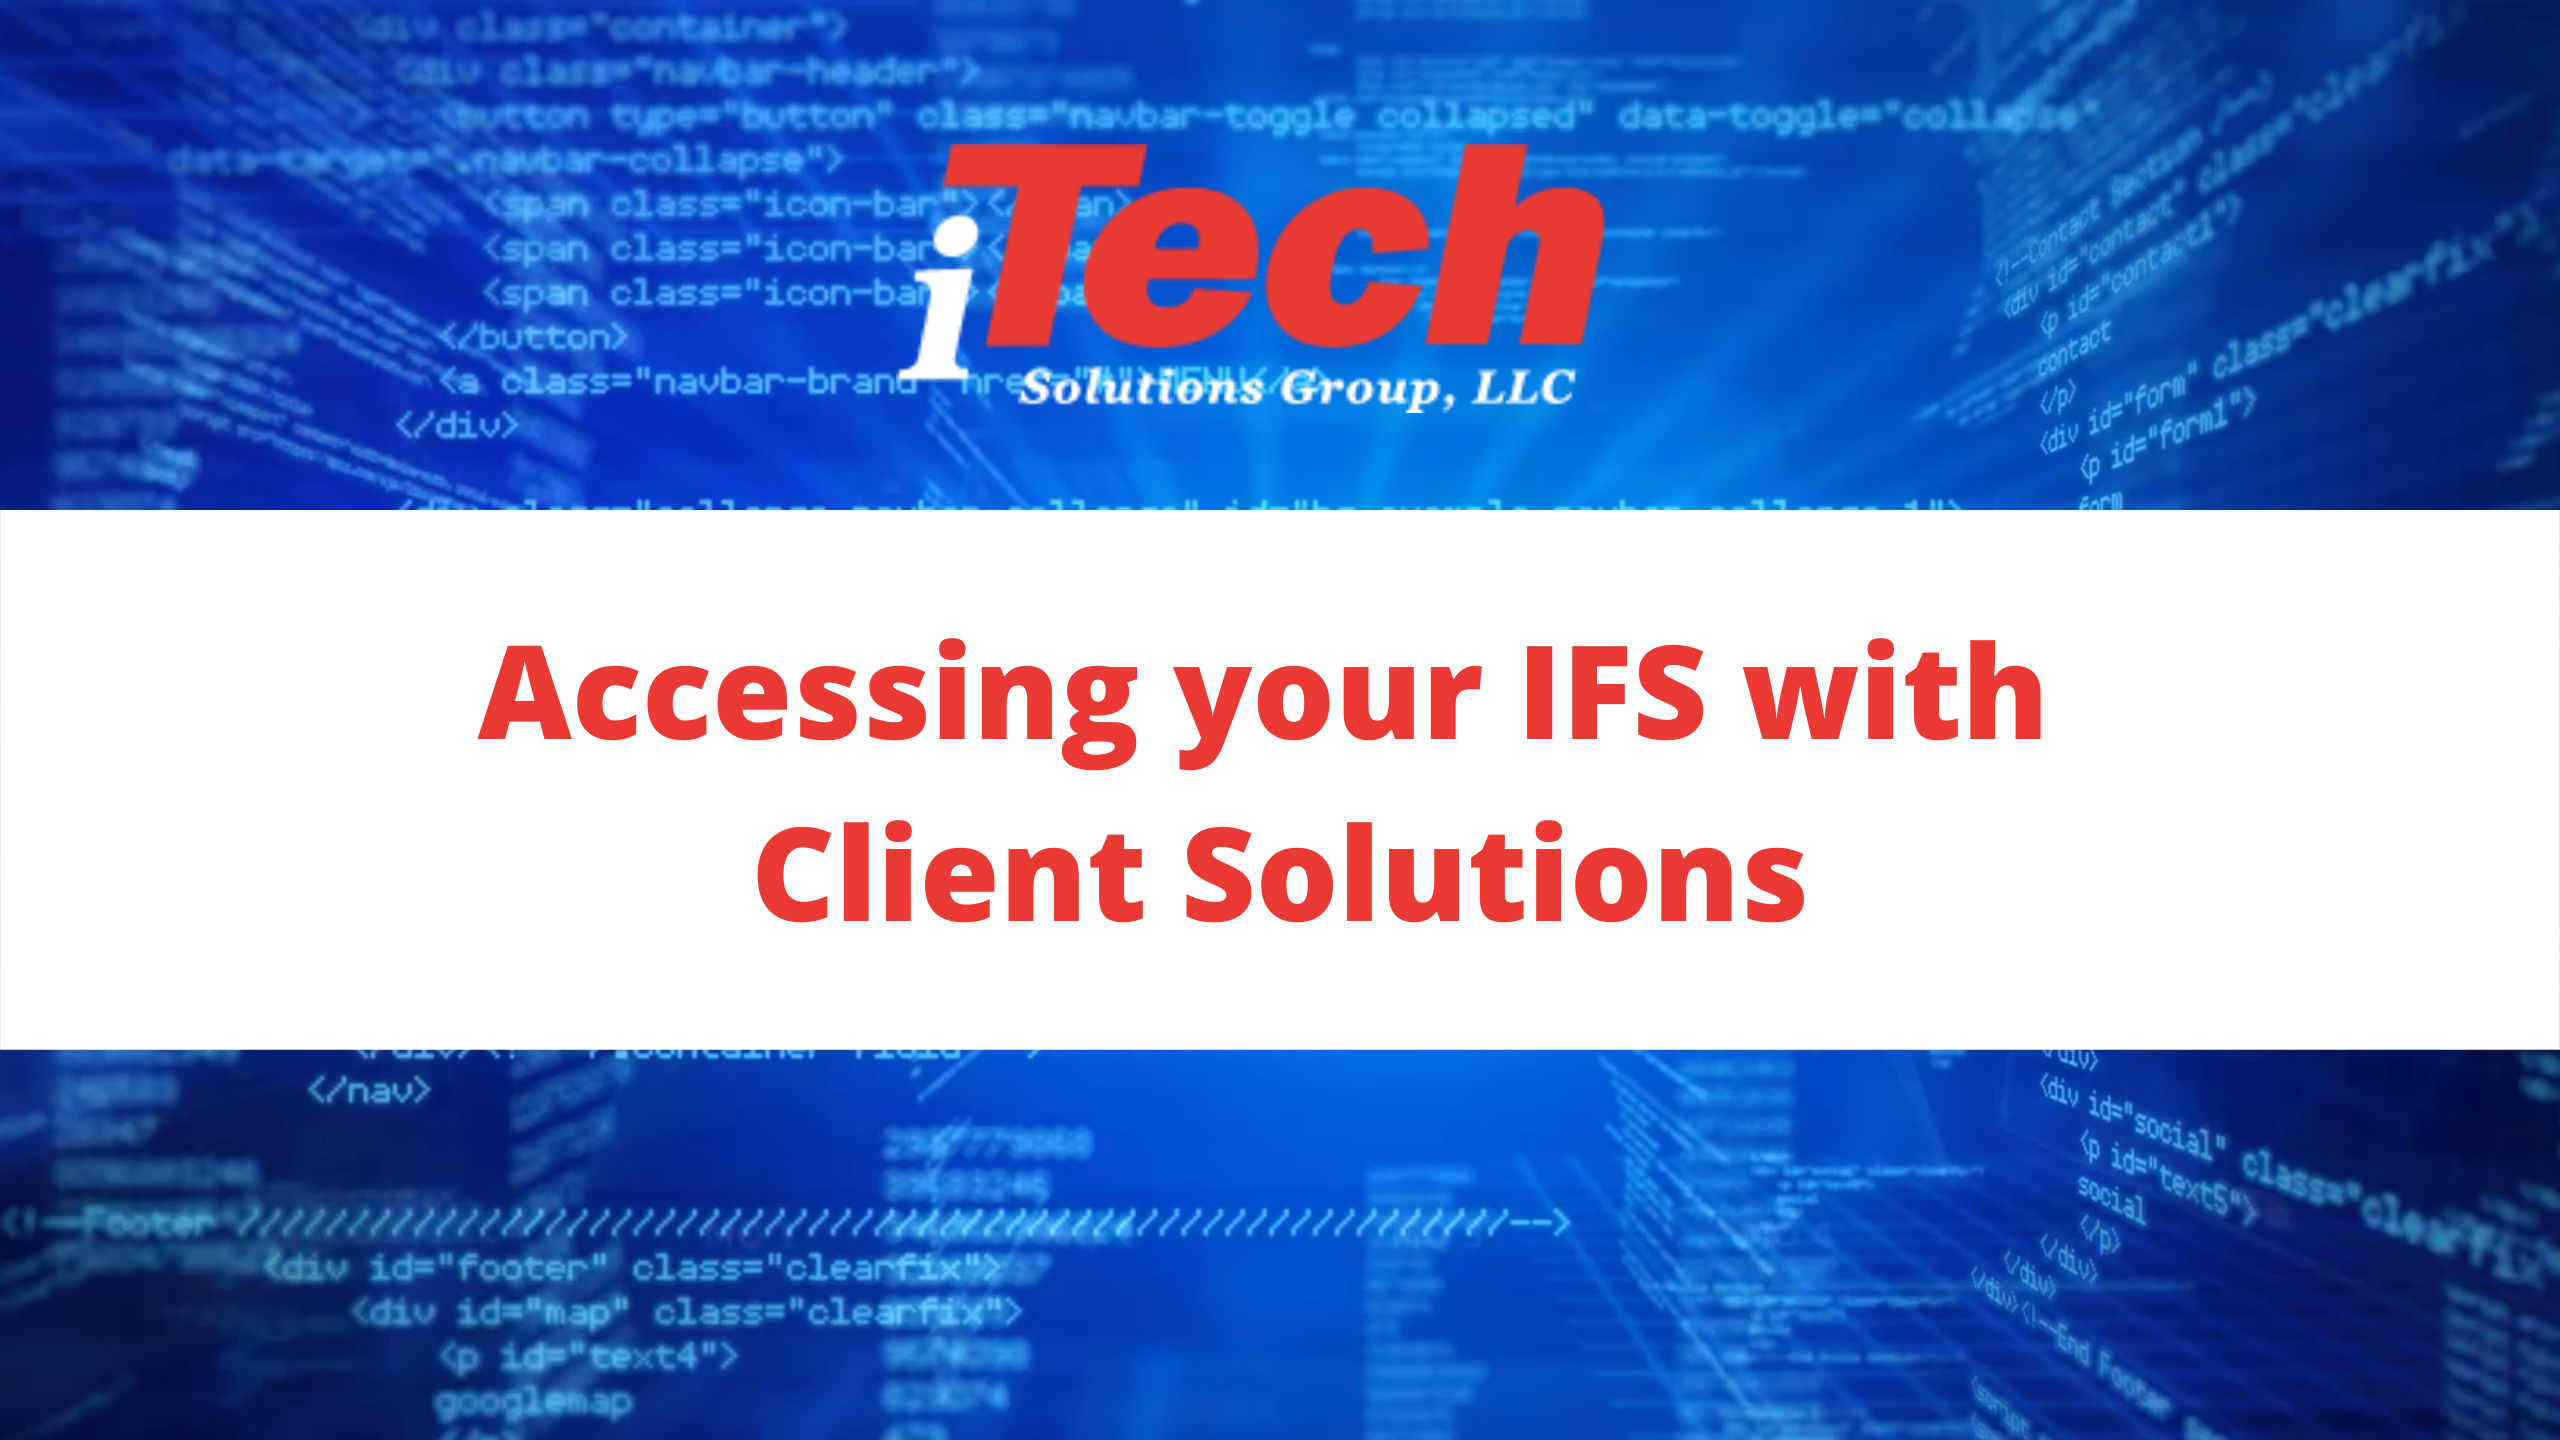 Accessing your IFS with Client Solutions